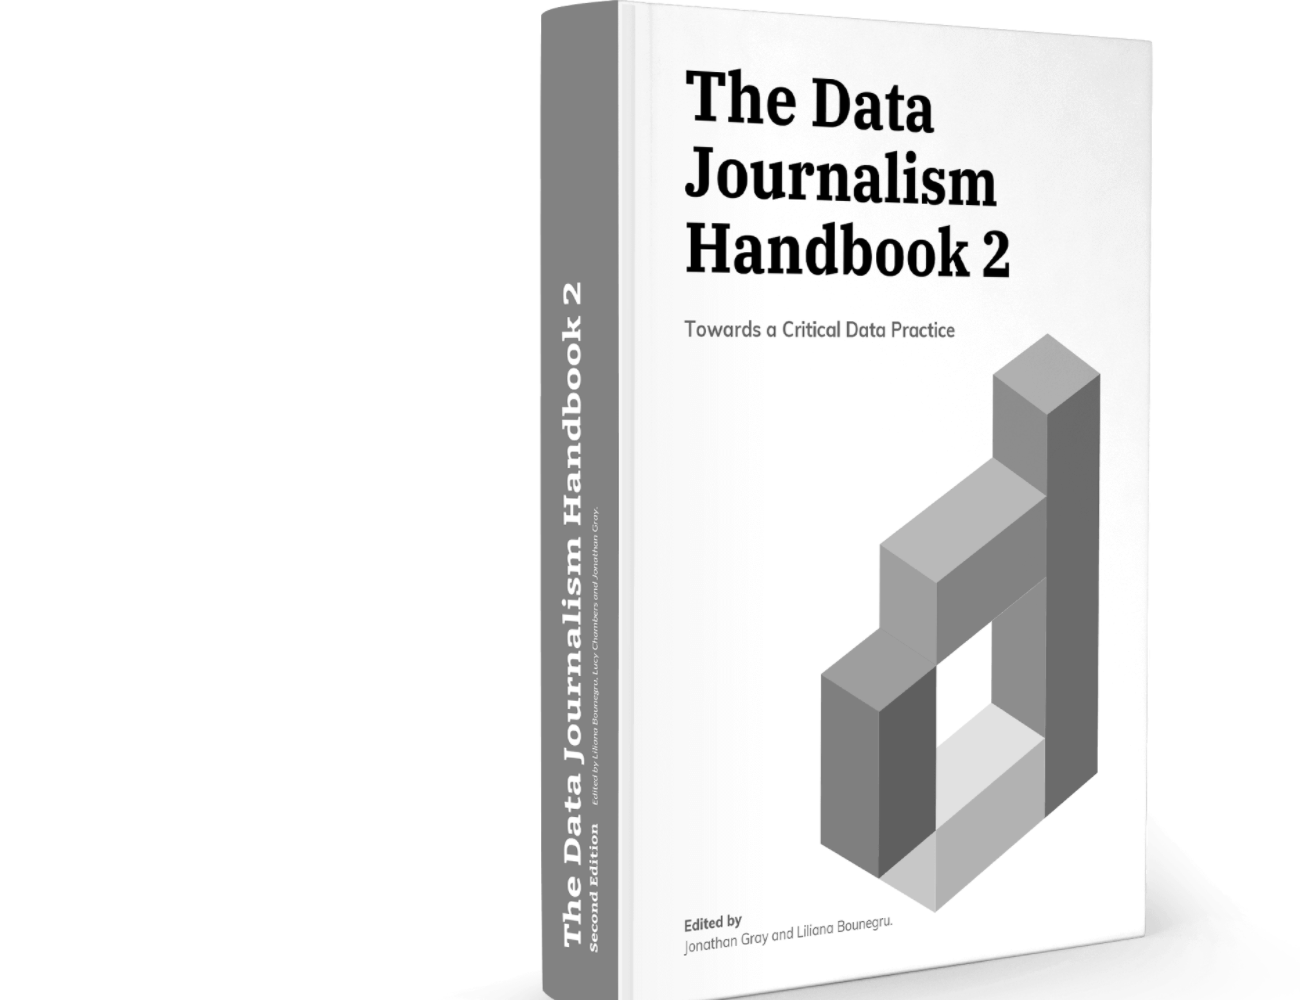 DATA JOURNALISM HANDBOOK: THINKING ABOUT DEEPFAKES